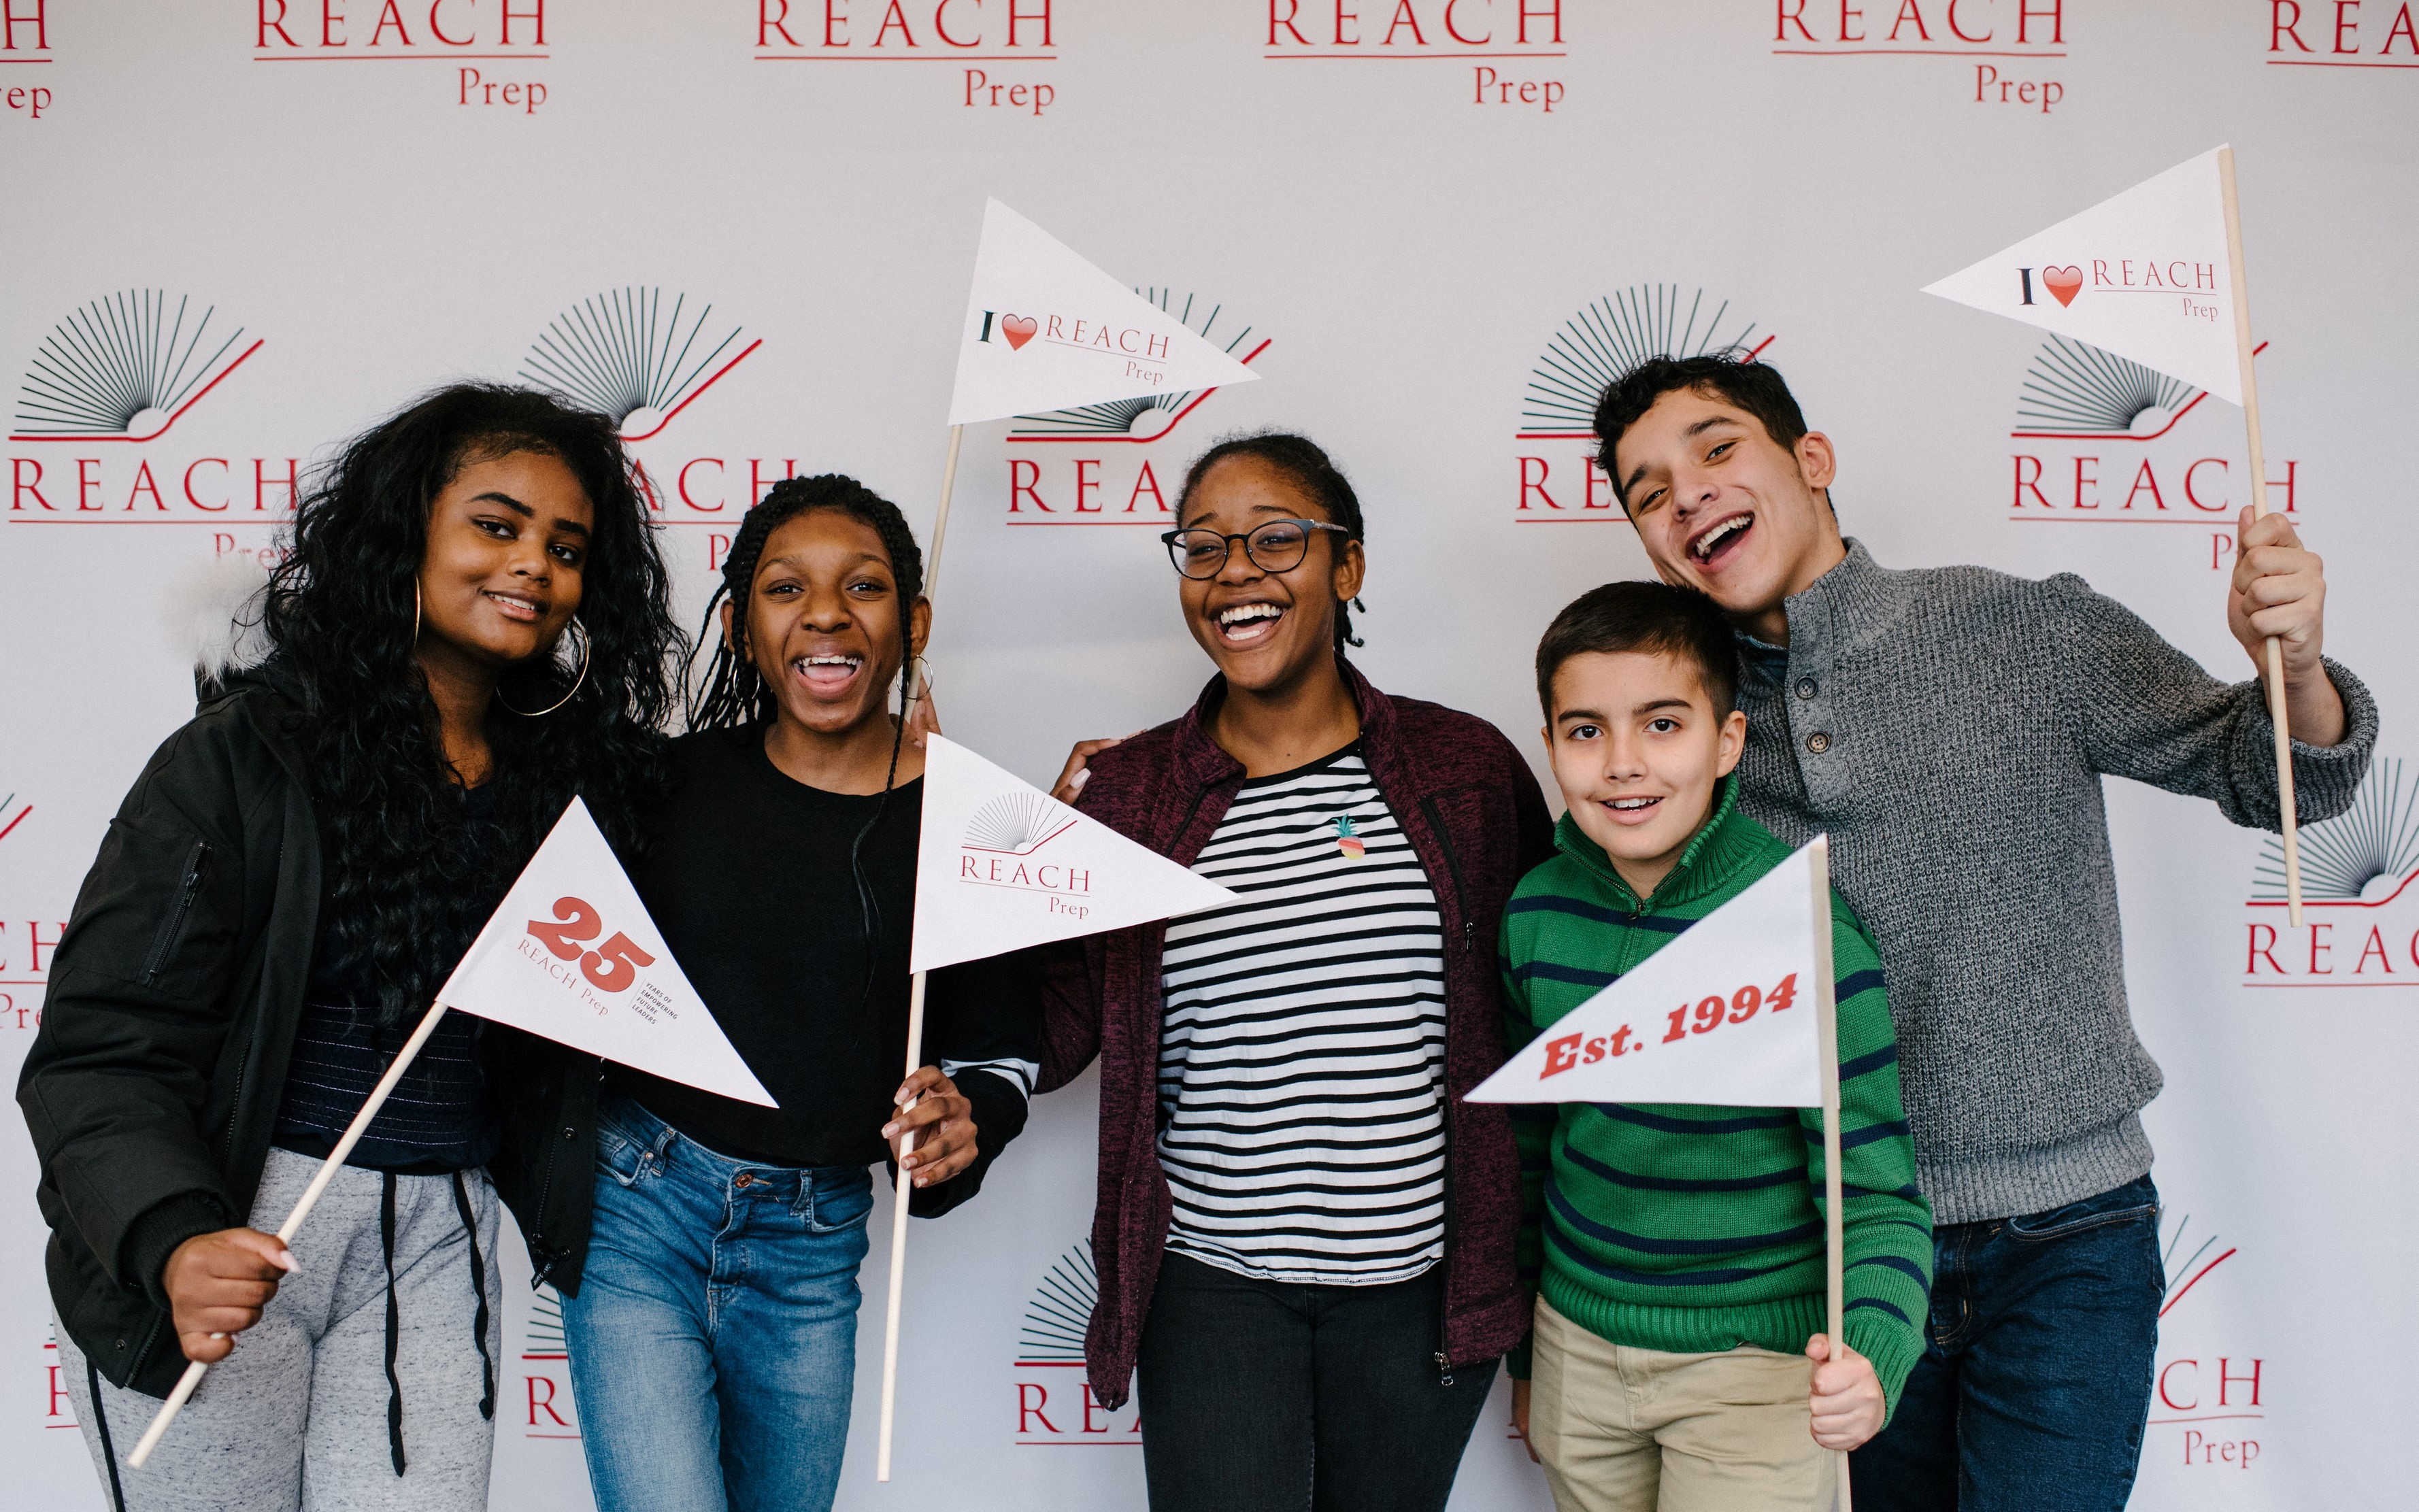 REACH Prep's 25th Anniversary